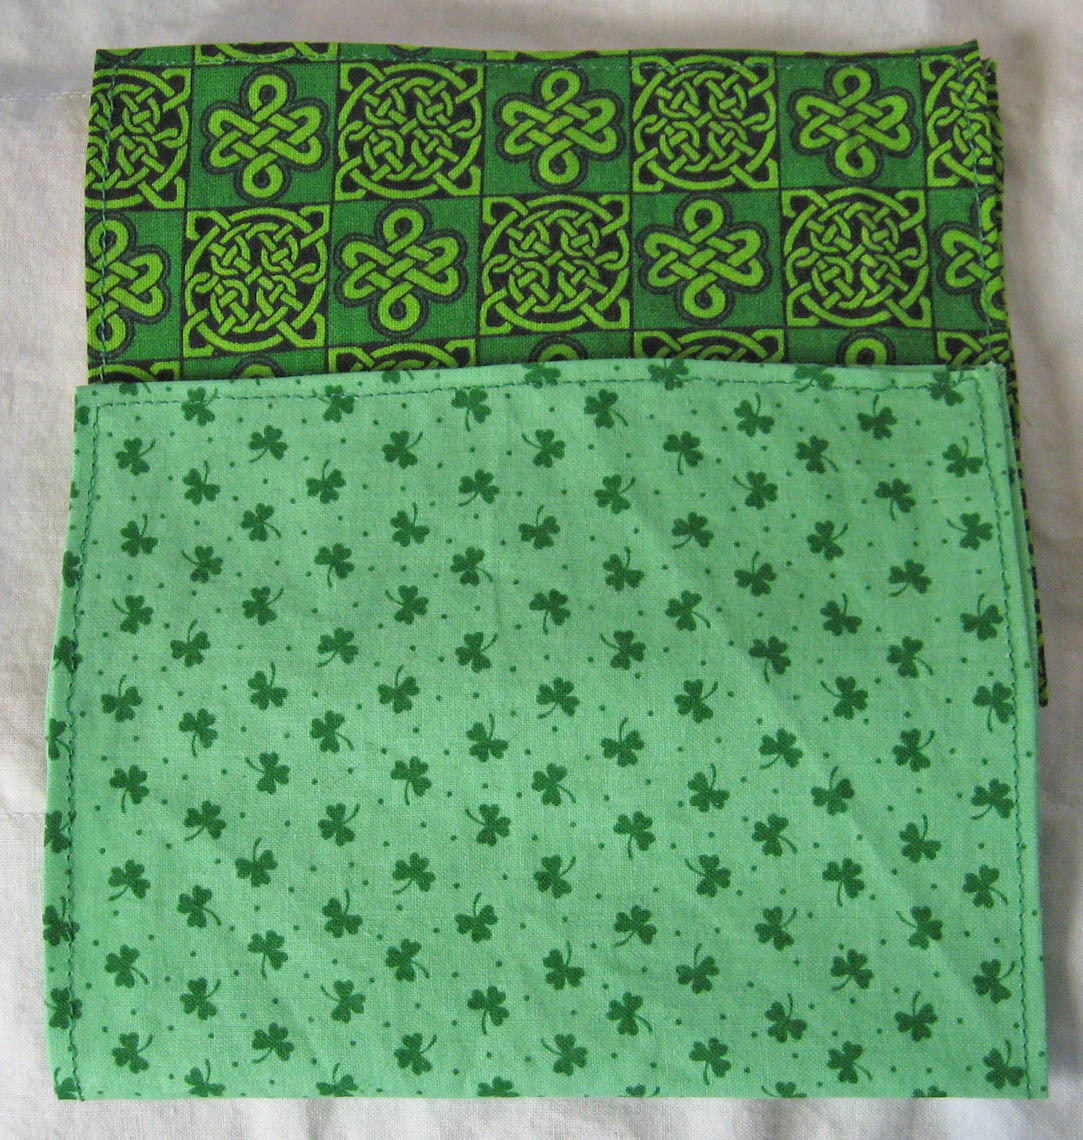 Primary image for Rosin Cloth Set of Two For Fiddle//Celtic/Irish/St Patricks/FiddleBelle Bran